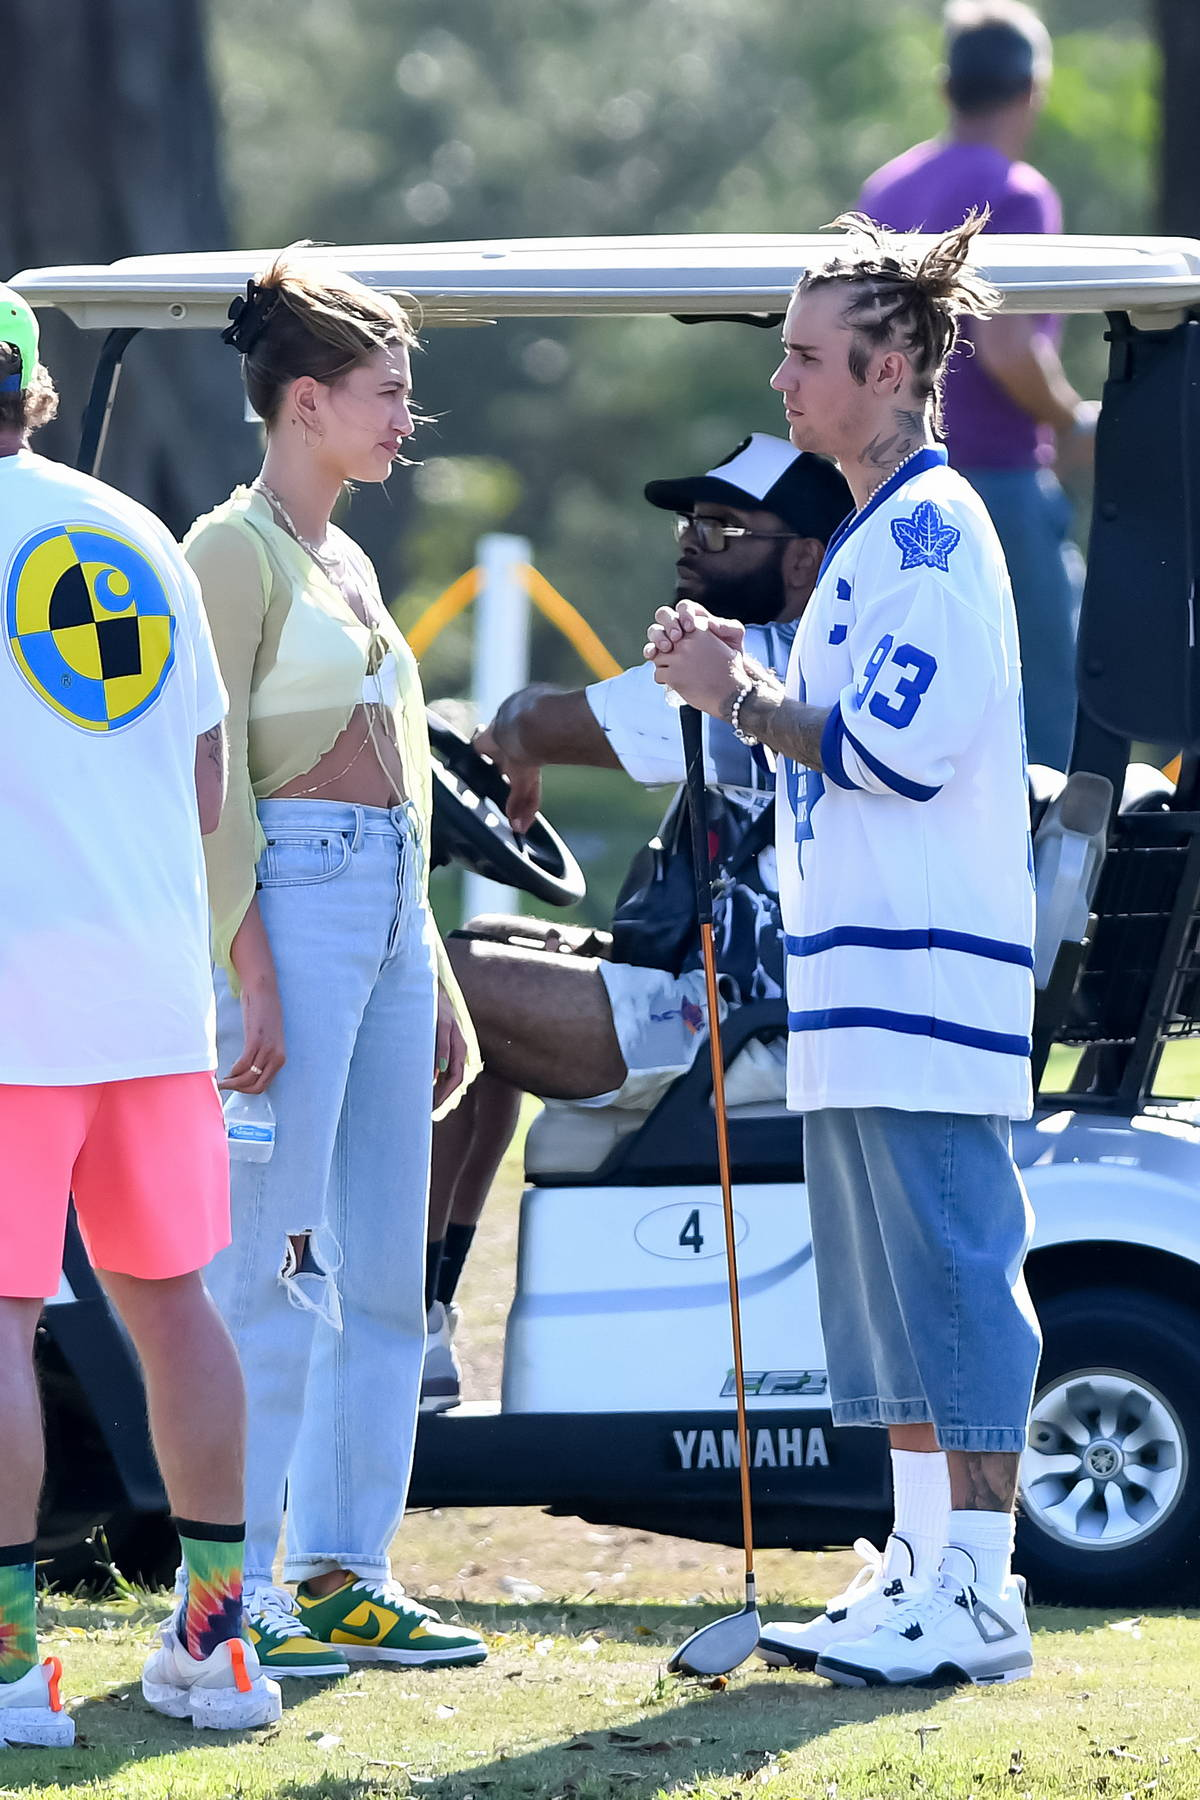 Hailey Bieber wears a sheer top while visiting Justin Bieber on the set of a music video in Miami, Florida